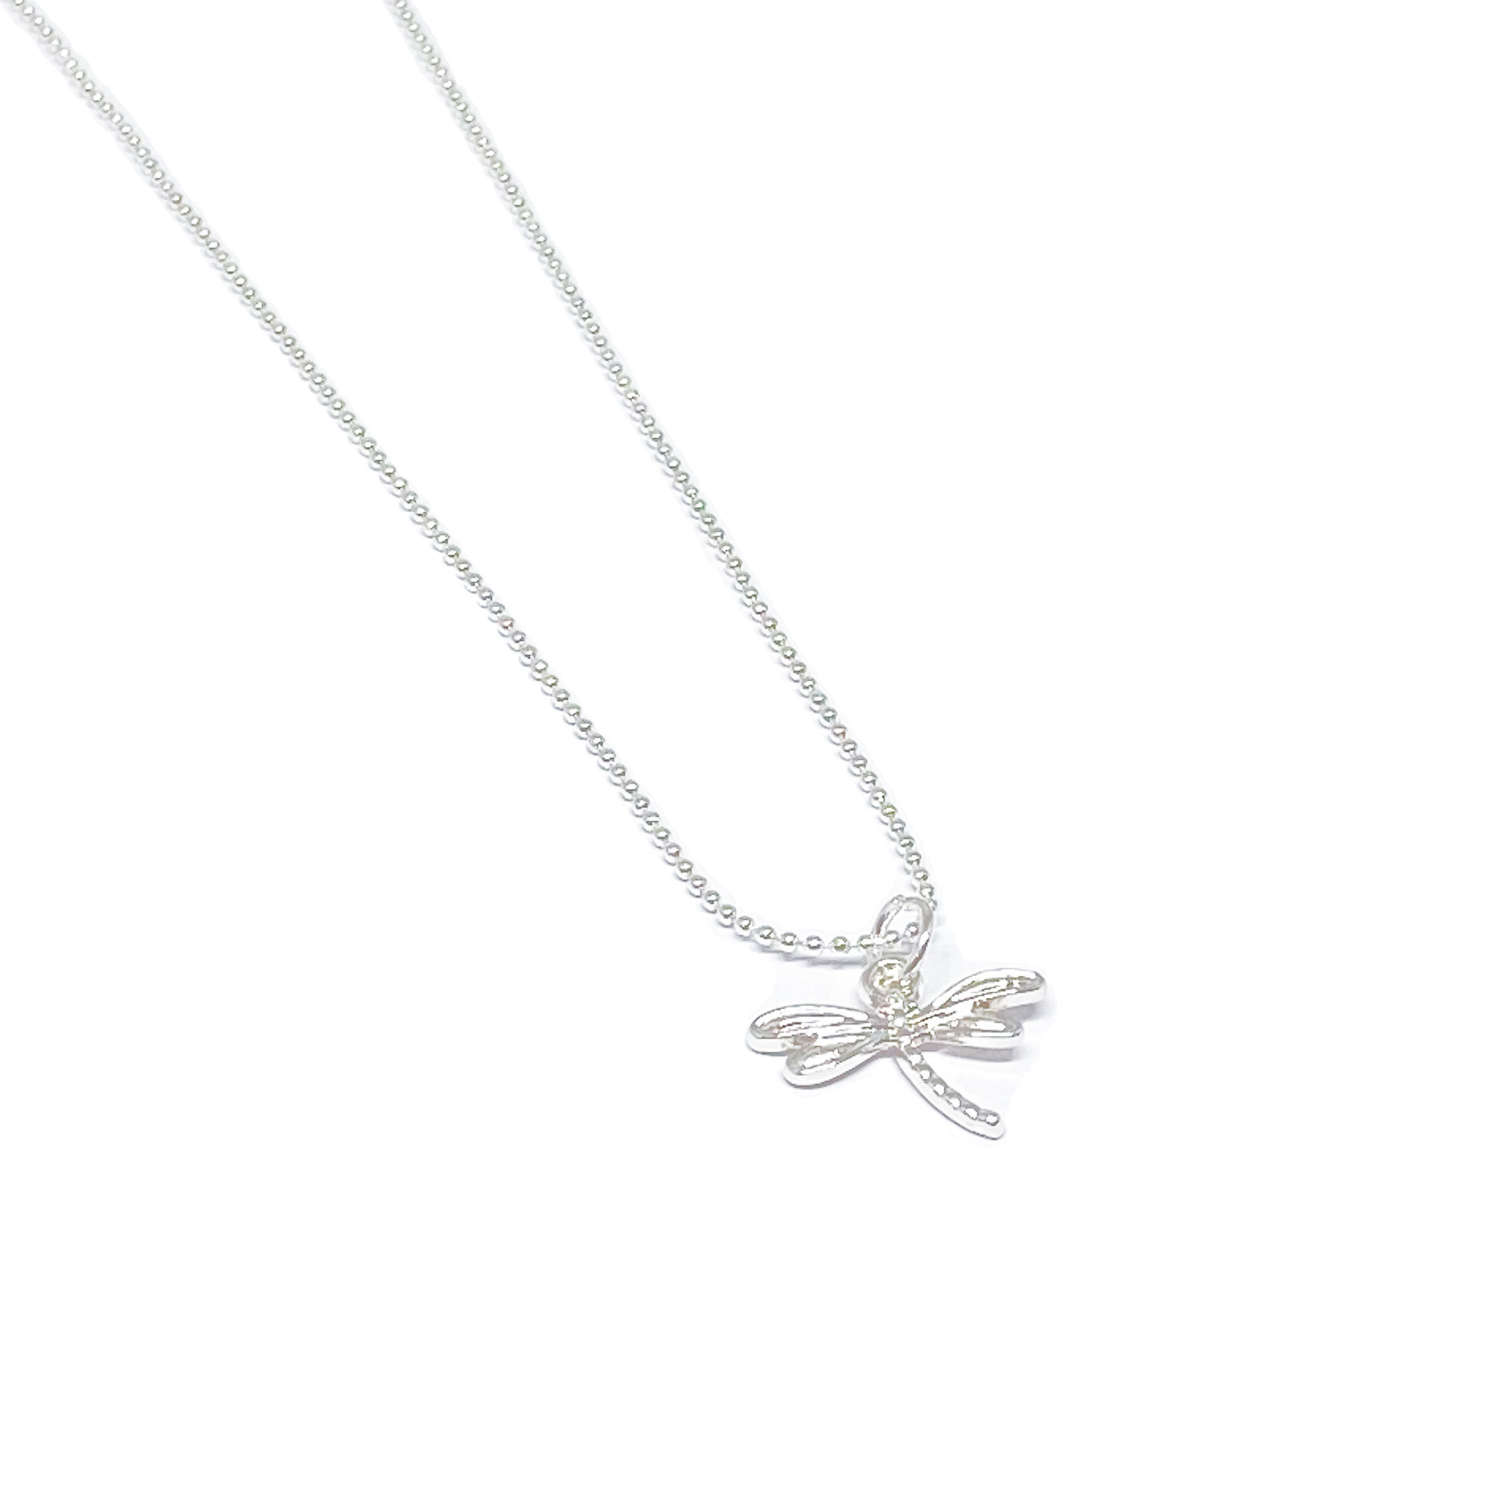 Daisy Dragonfly Necklace - Silver